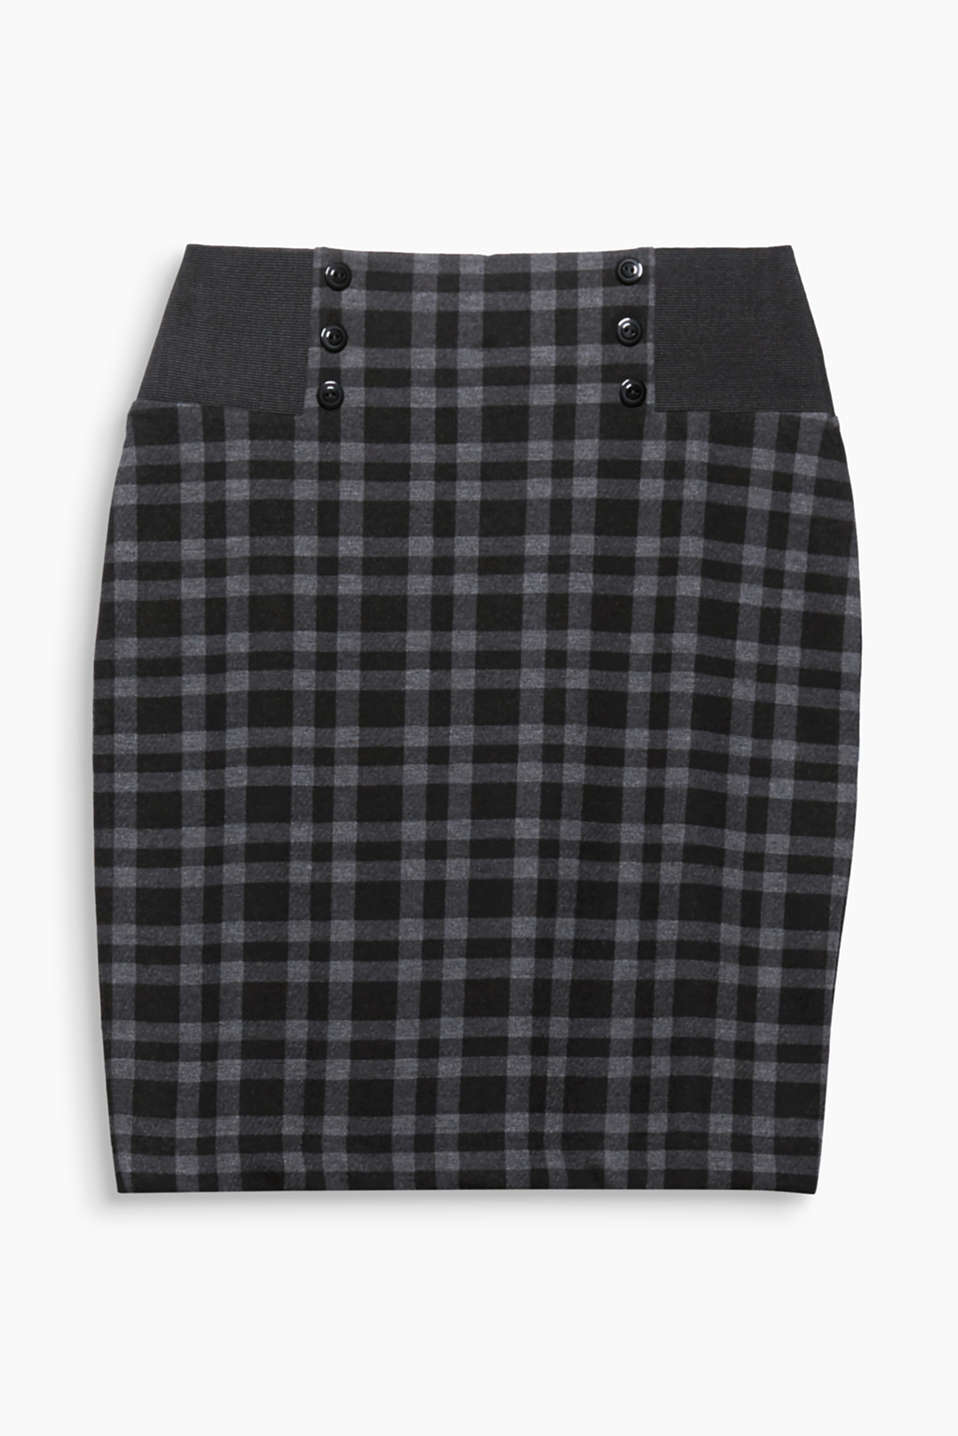 This checked pencil skirt in heavy jersey is a must-have thanks to the ultra-feminine retro charm!